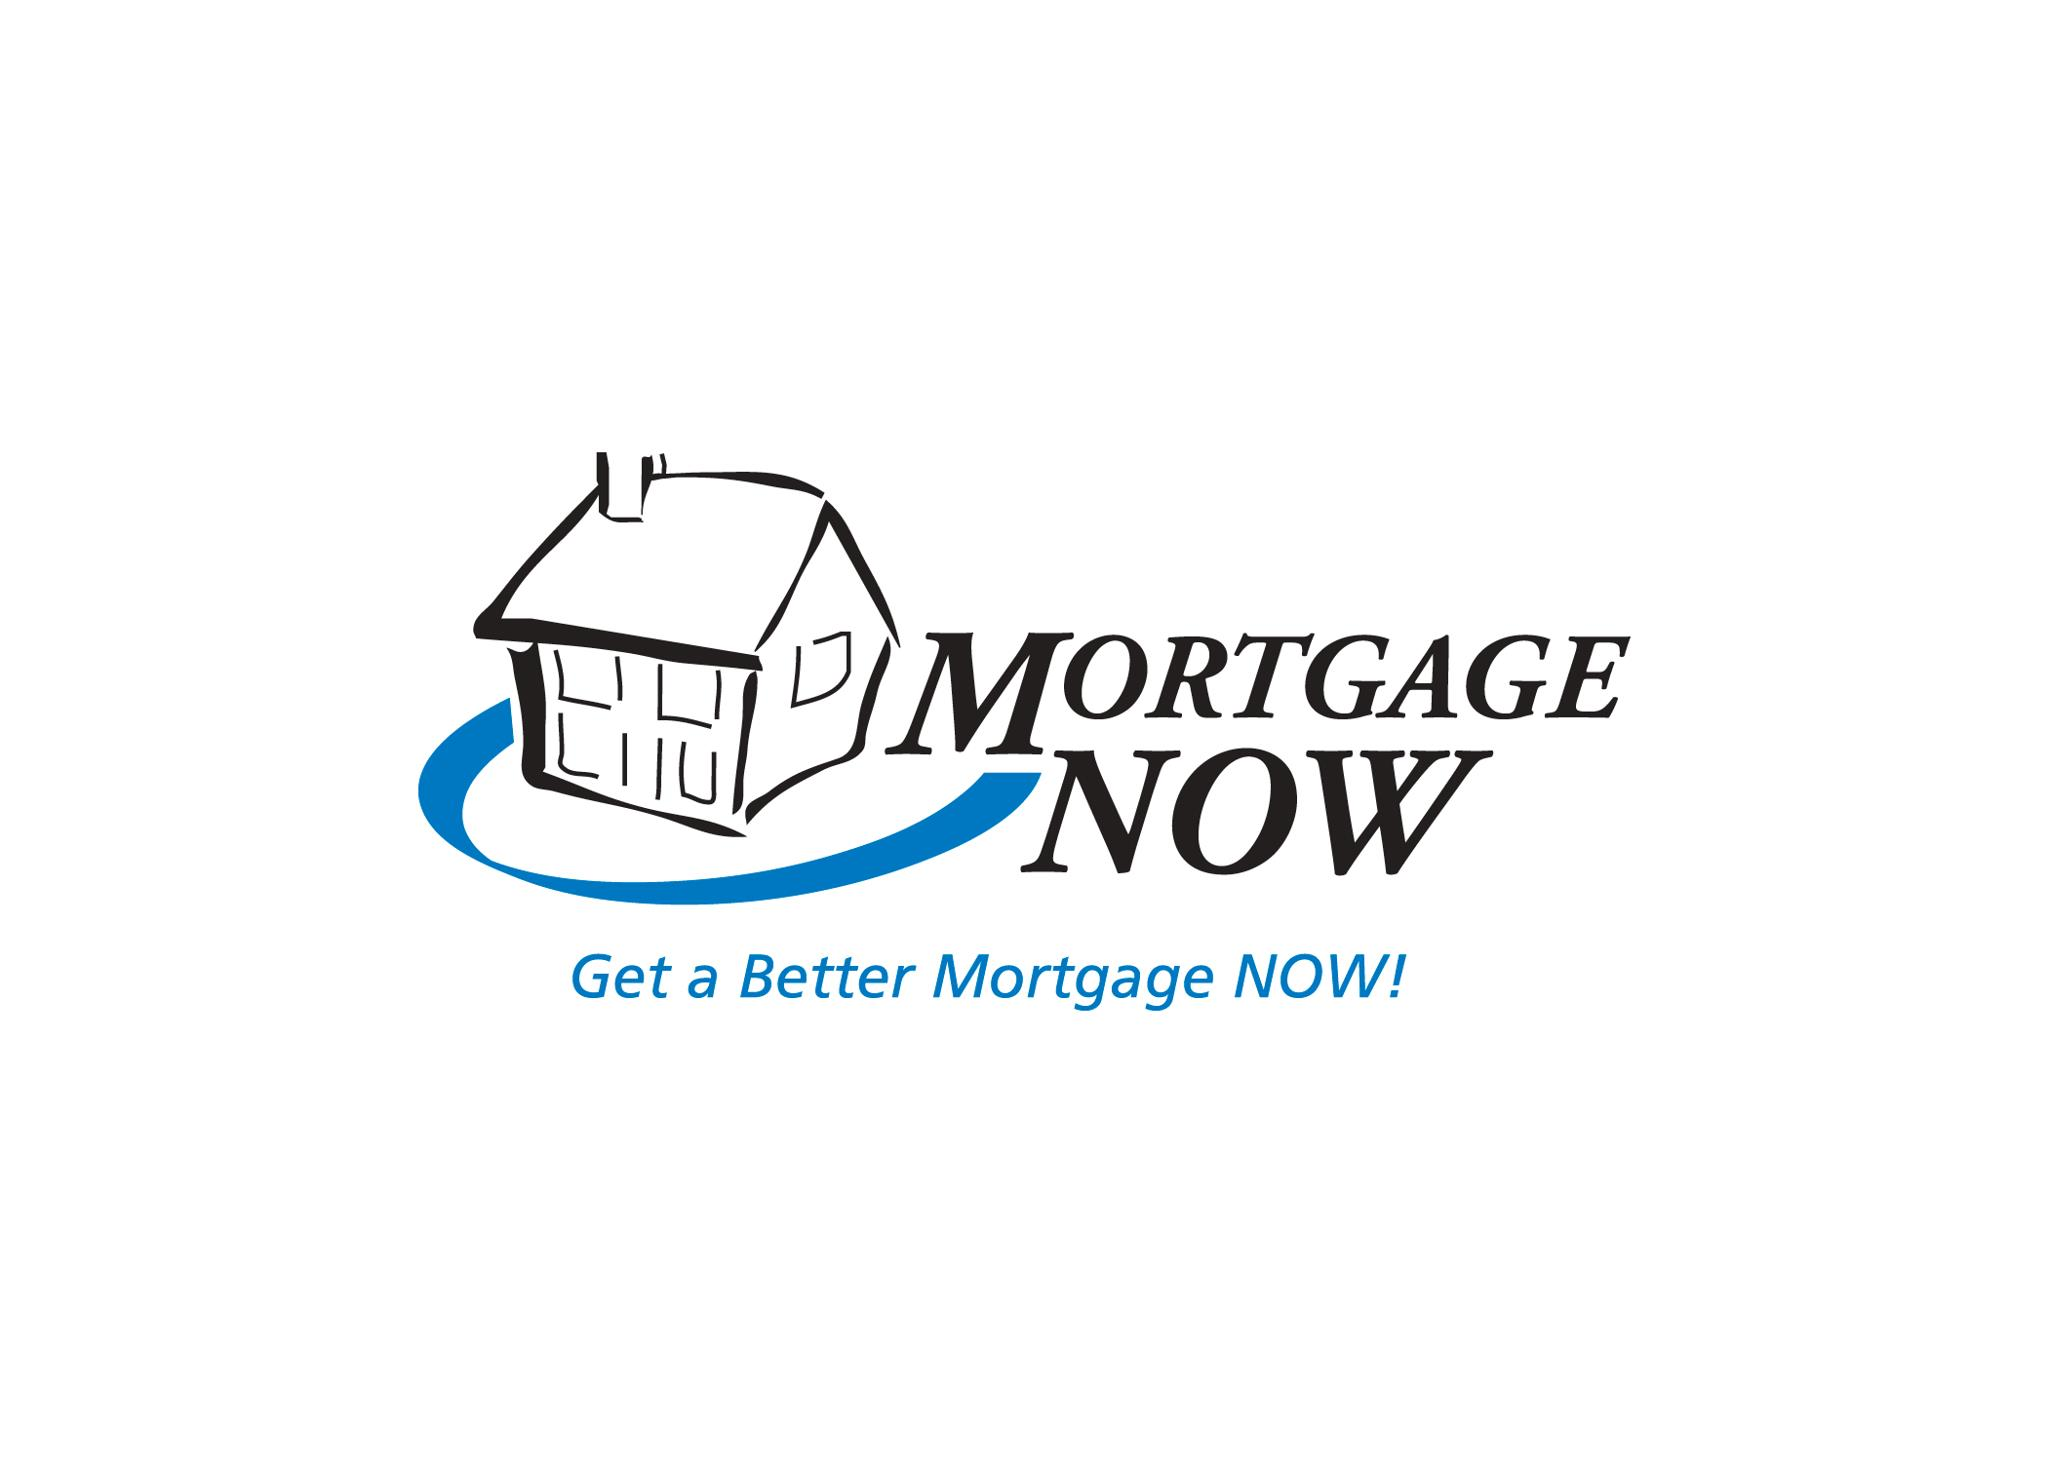 Mortgage Now